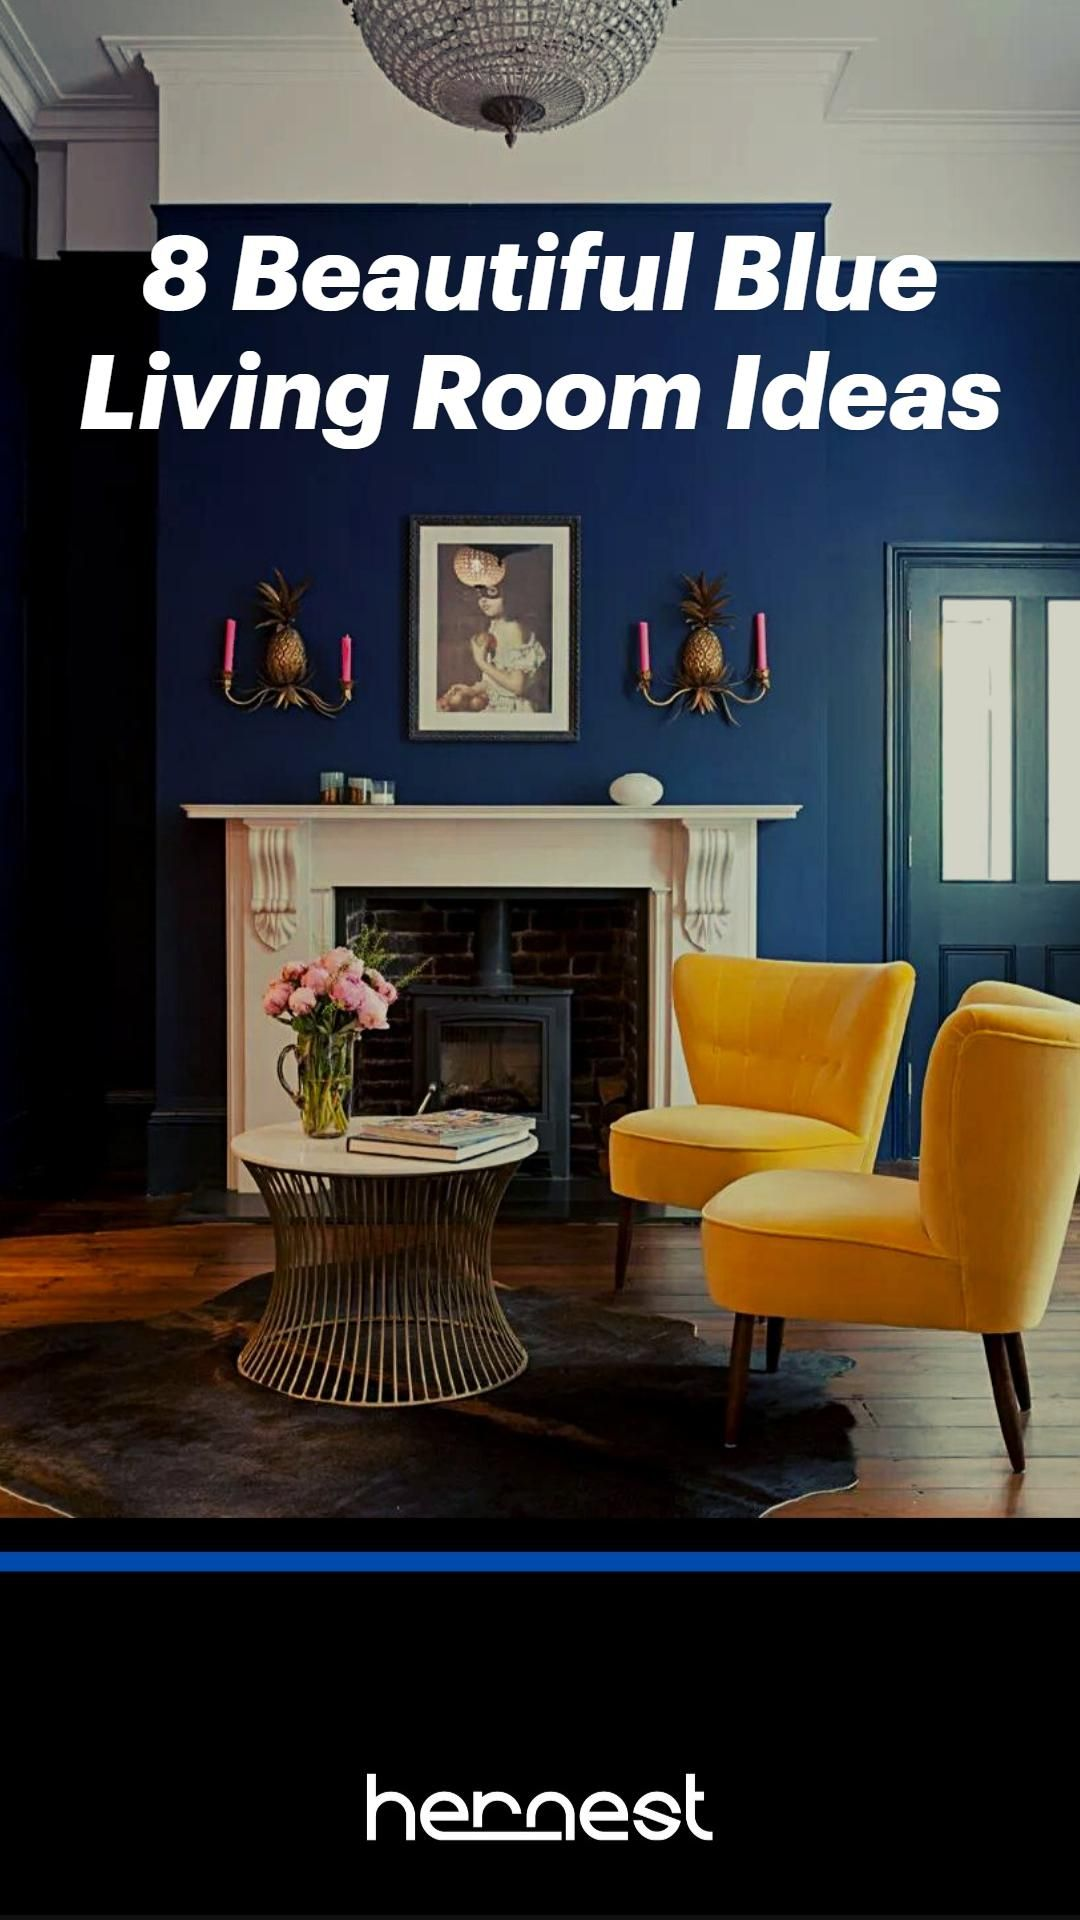 600+ Hernest Styling Tips   8 Beautiful Blue Living Room Ideas